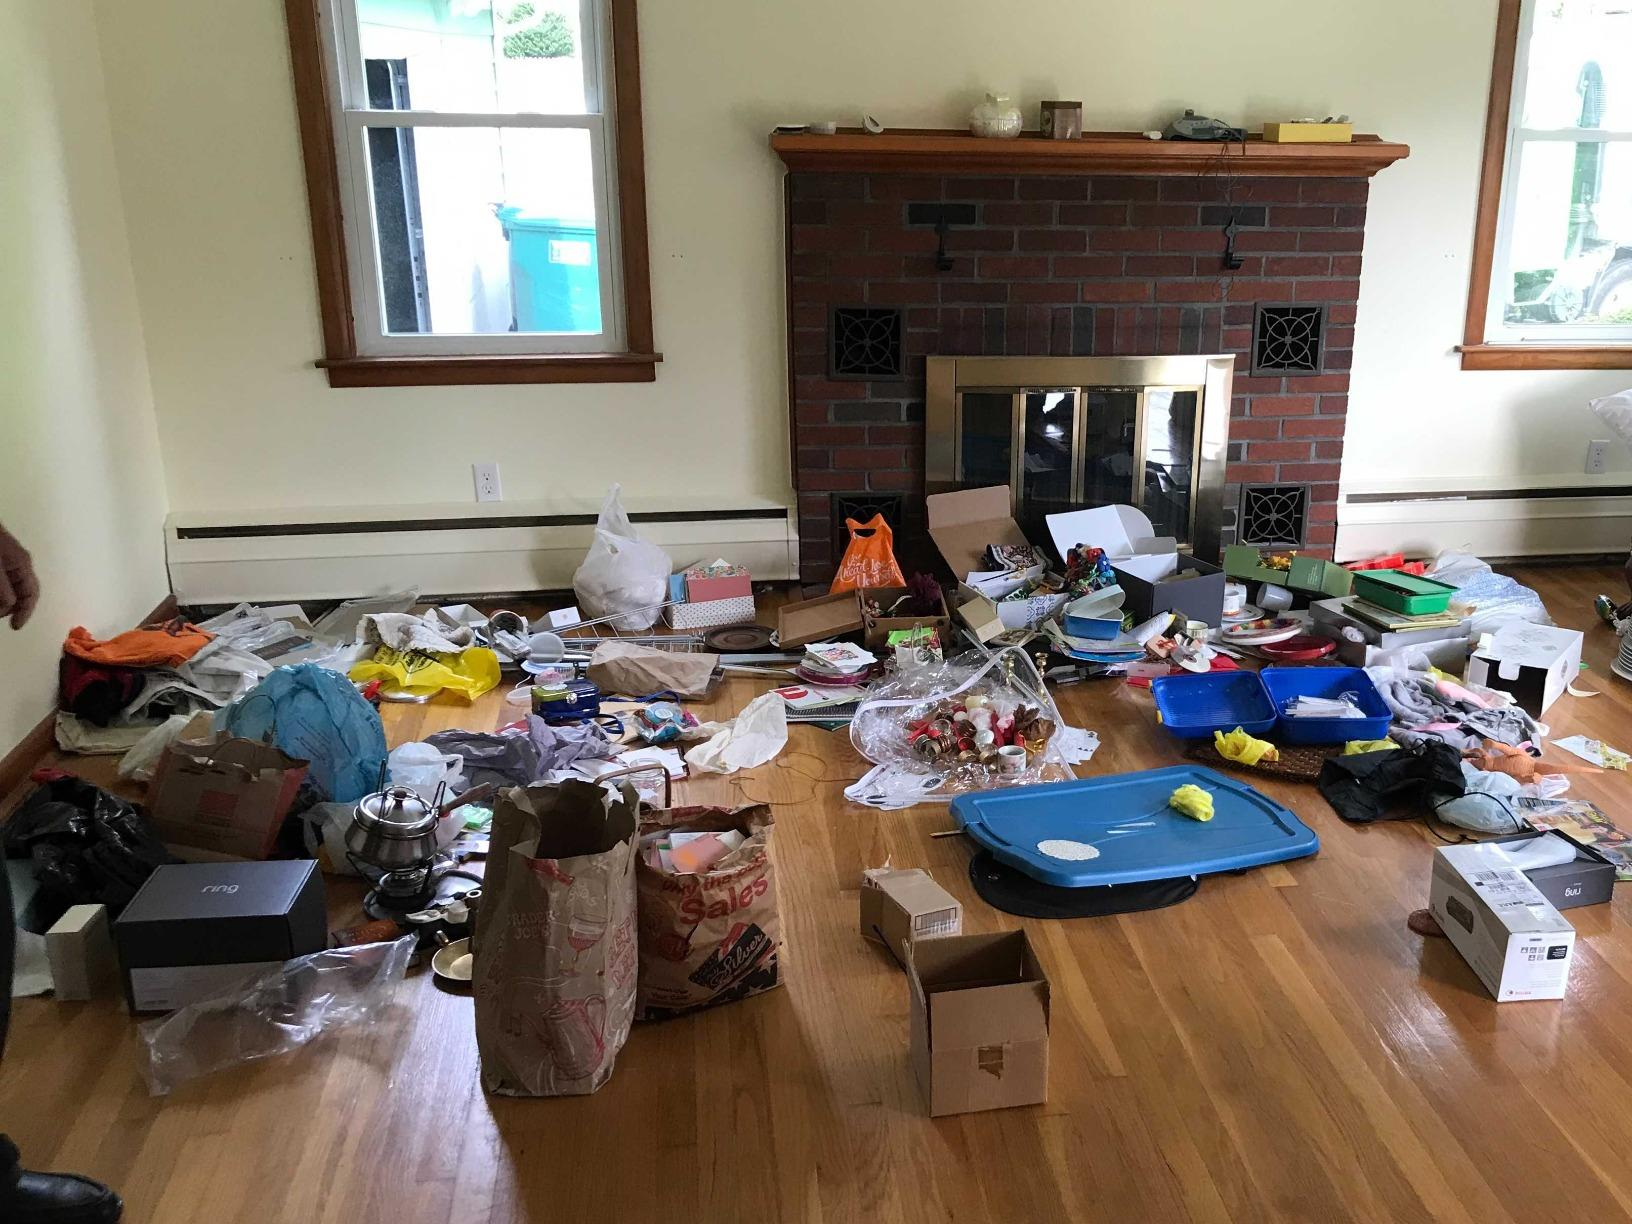 Living Room Junk Removal in Milford, CT - Before Photo